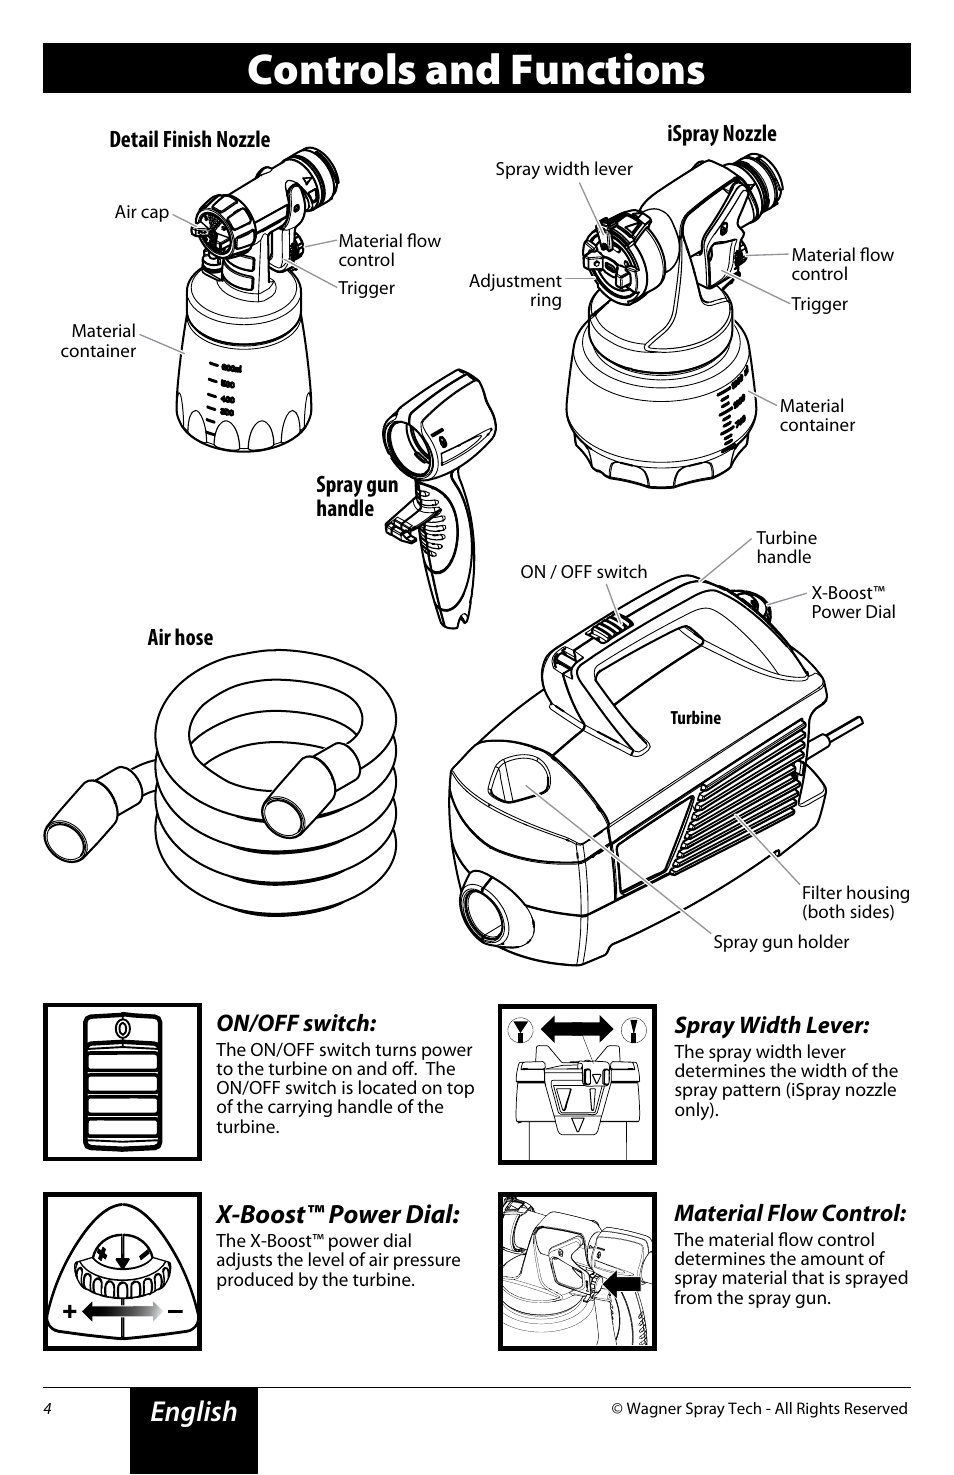 Controls and functions, English, X-boost™ power dial